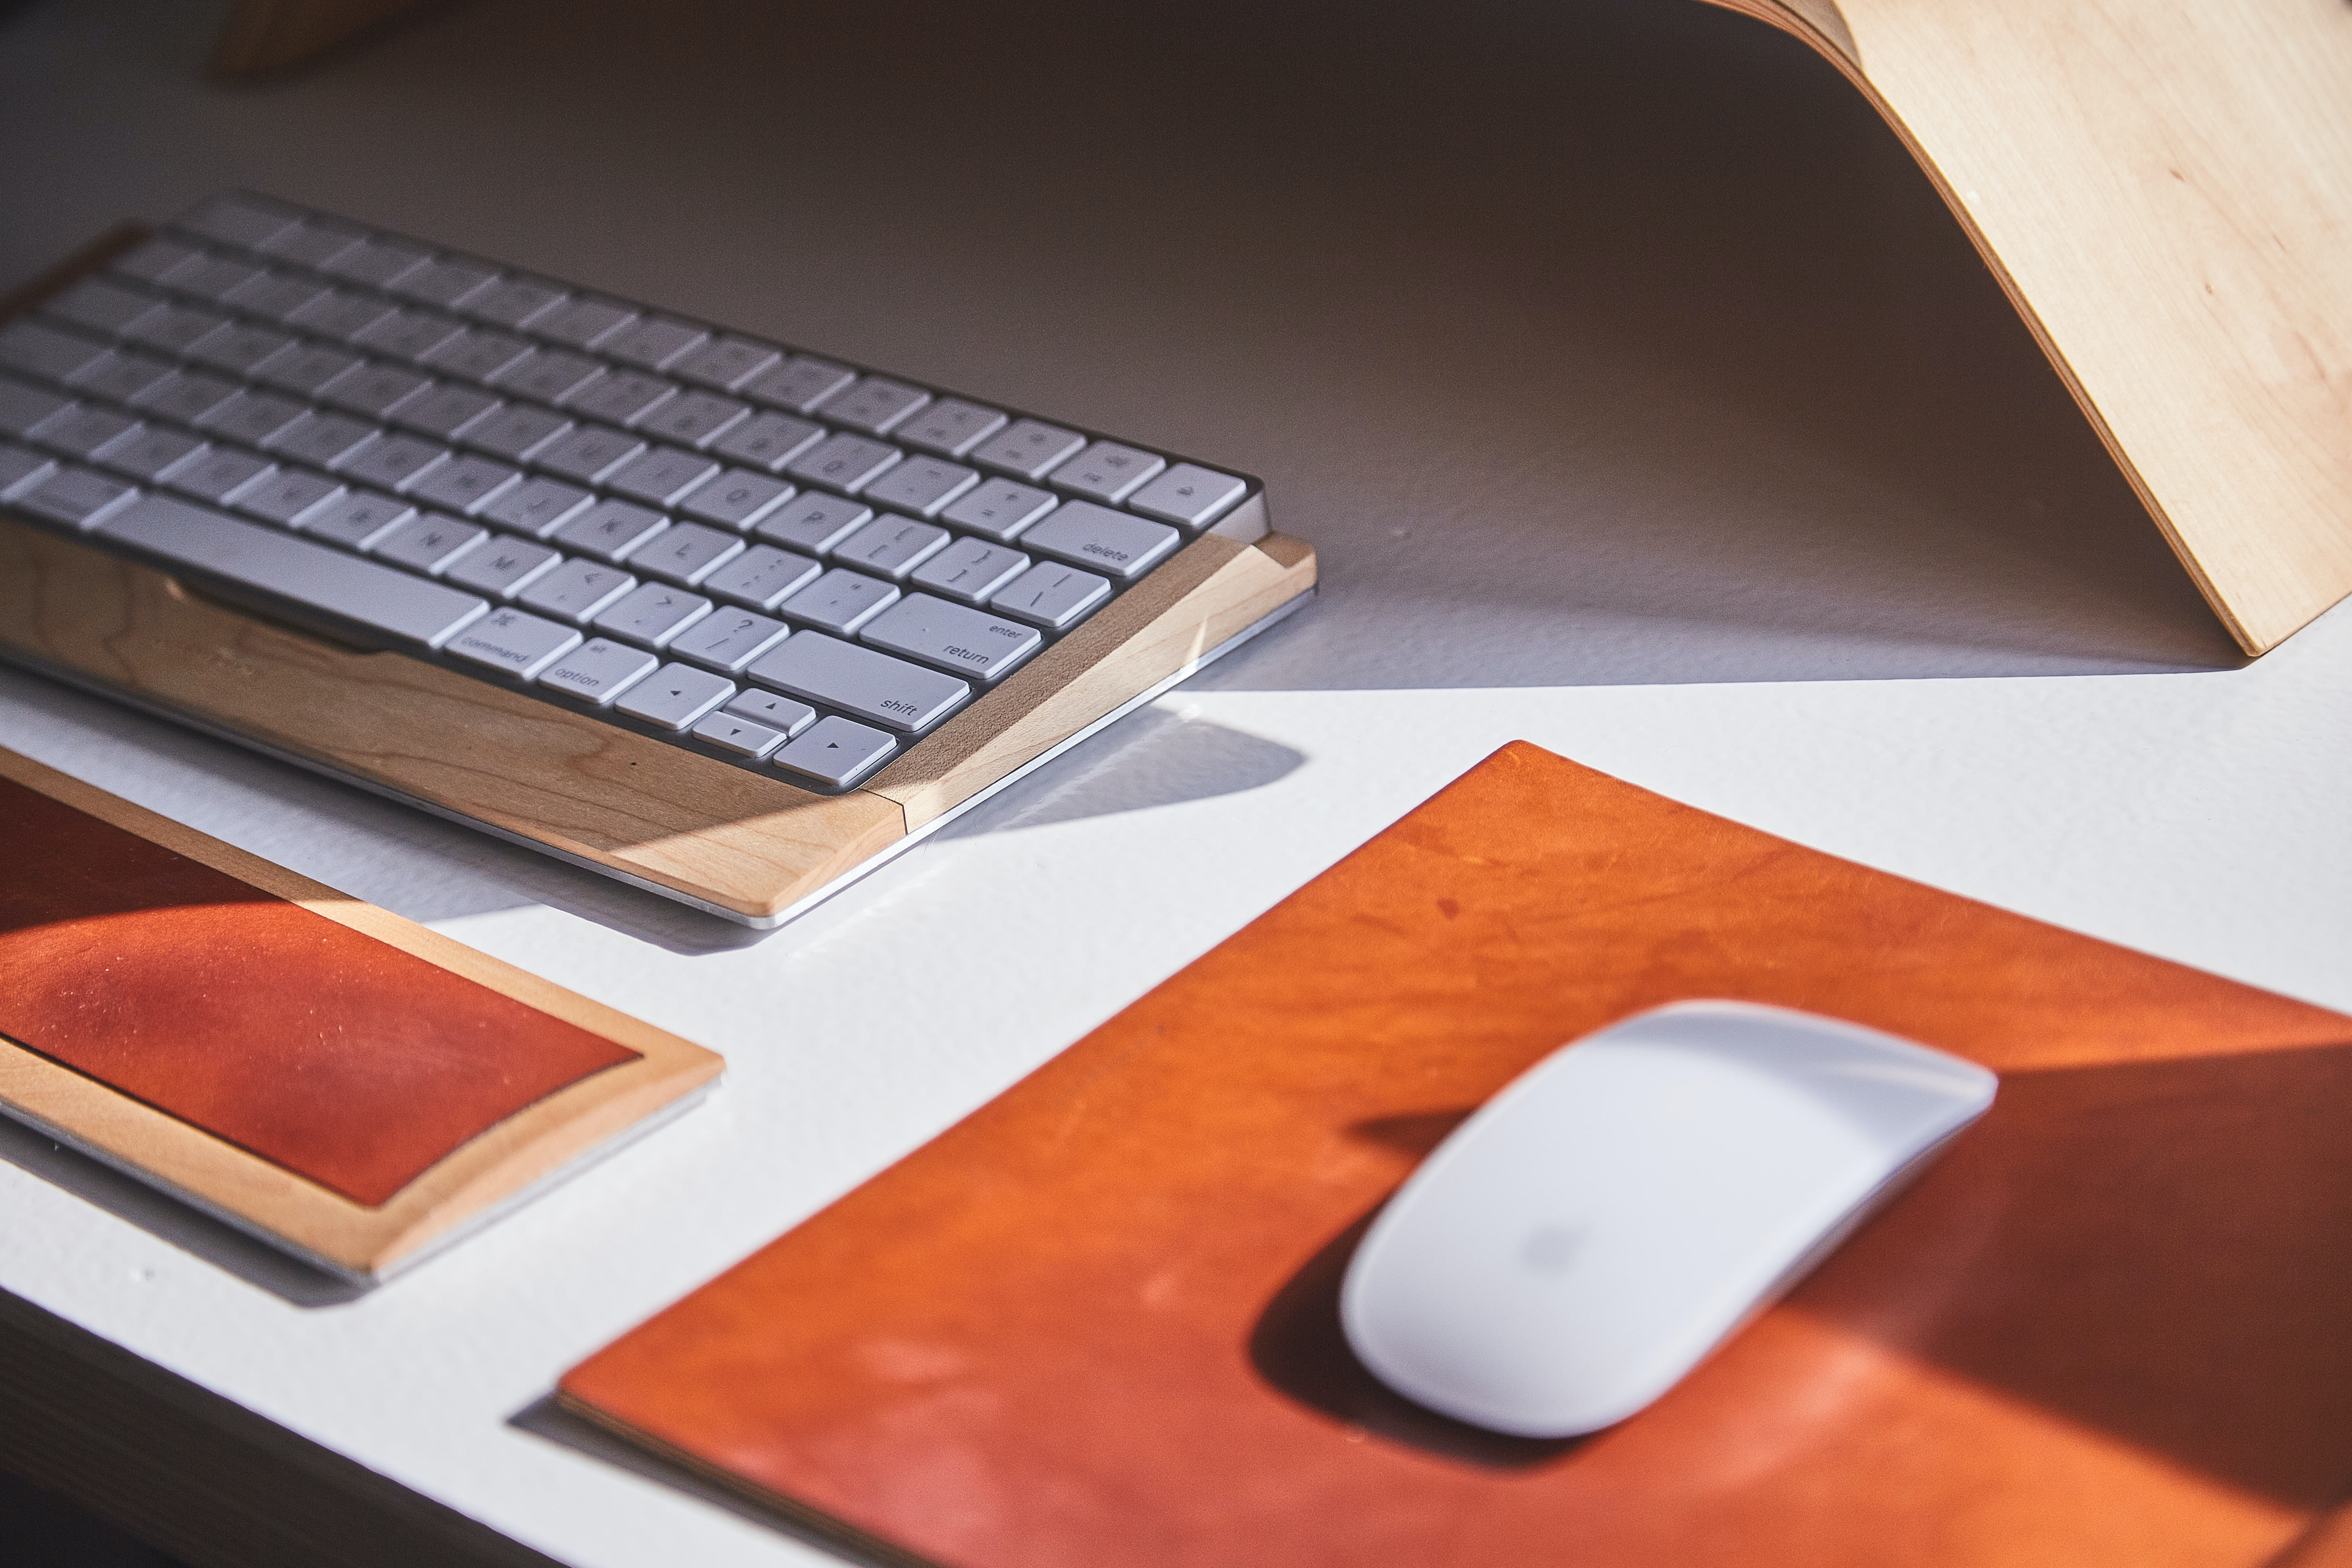 An Apple mouse and keyboard in a wooden casing on a desk